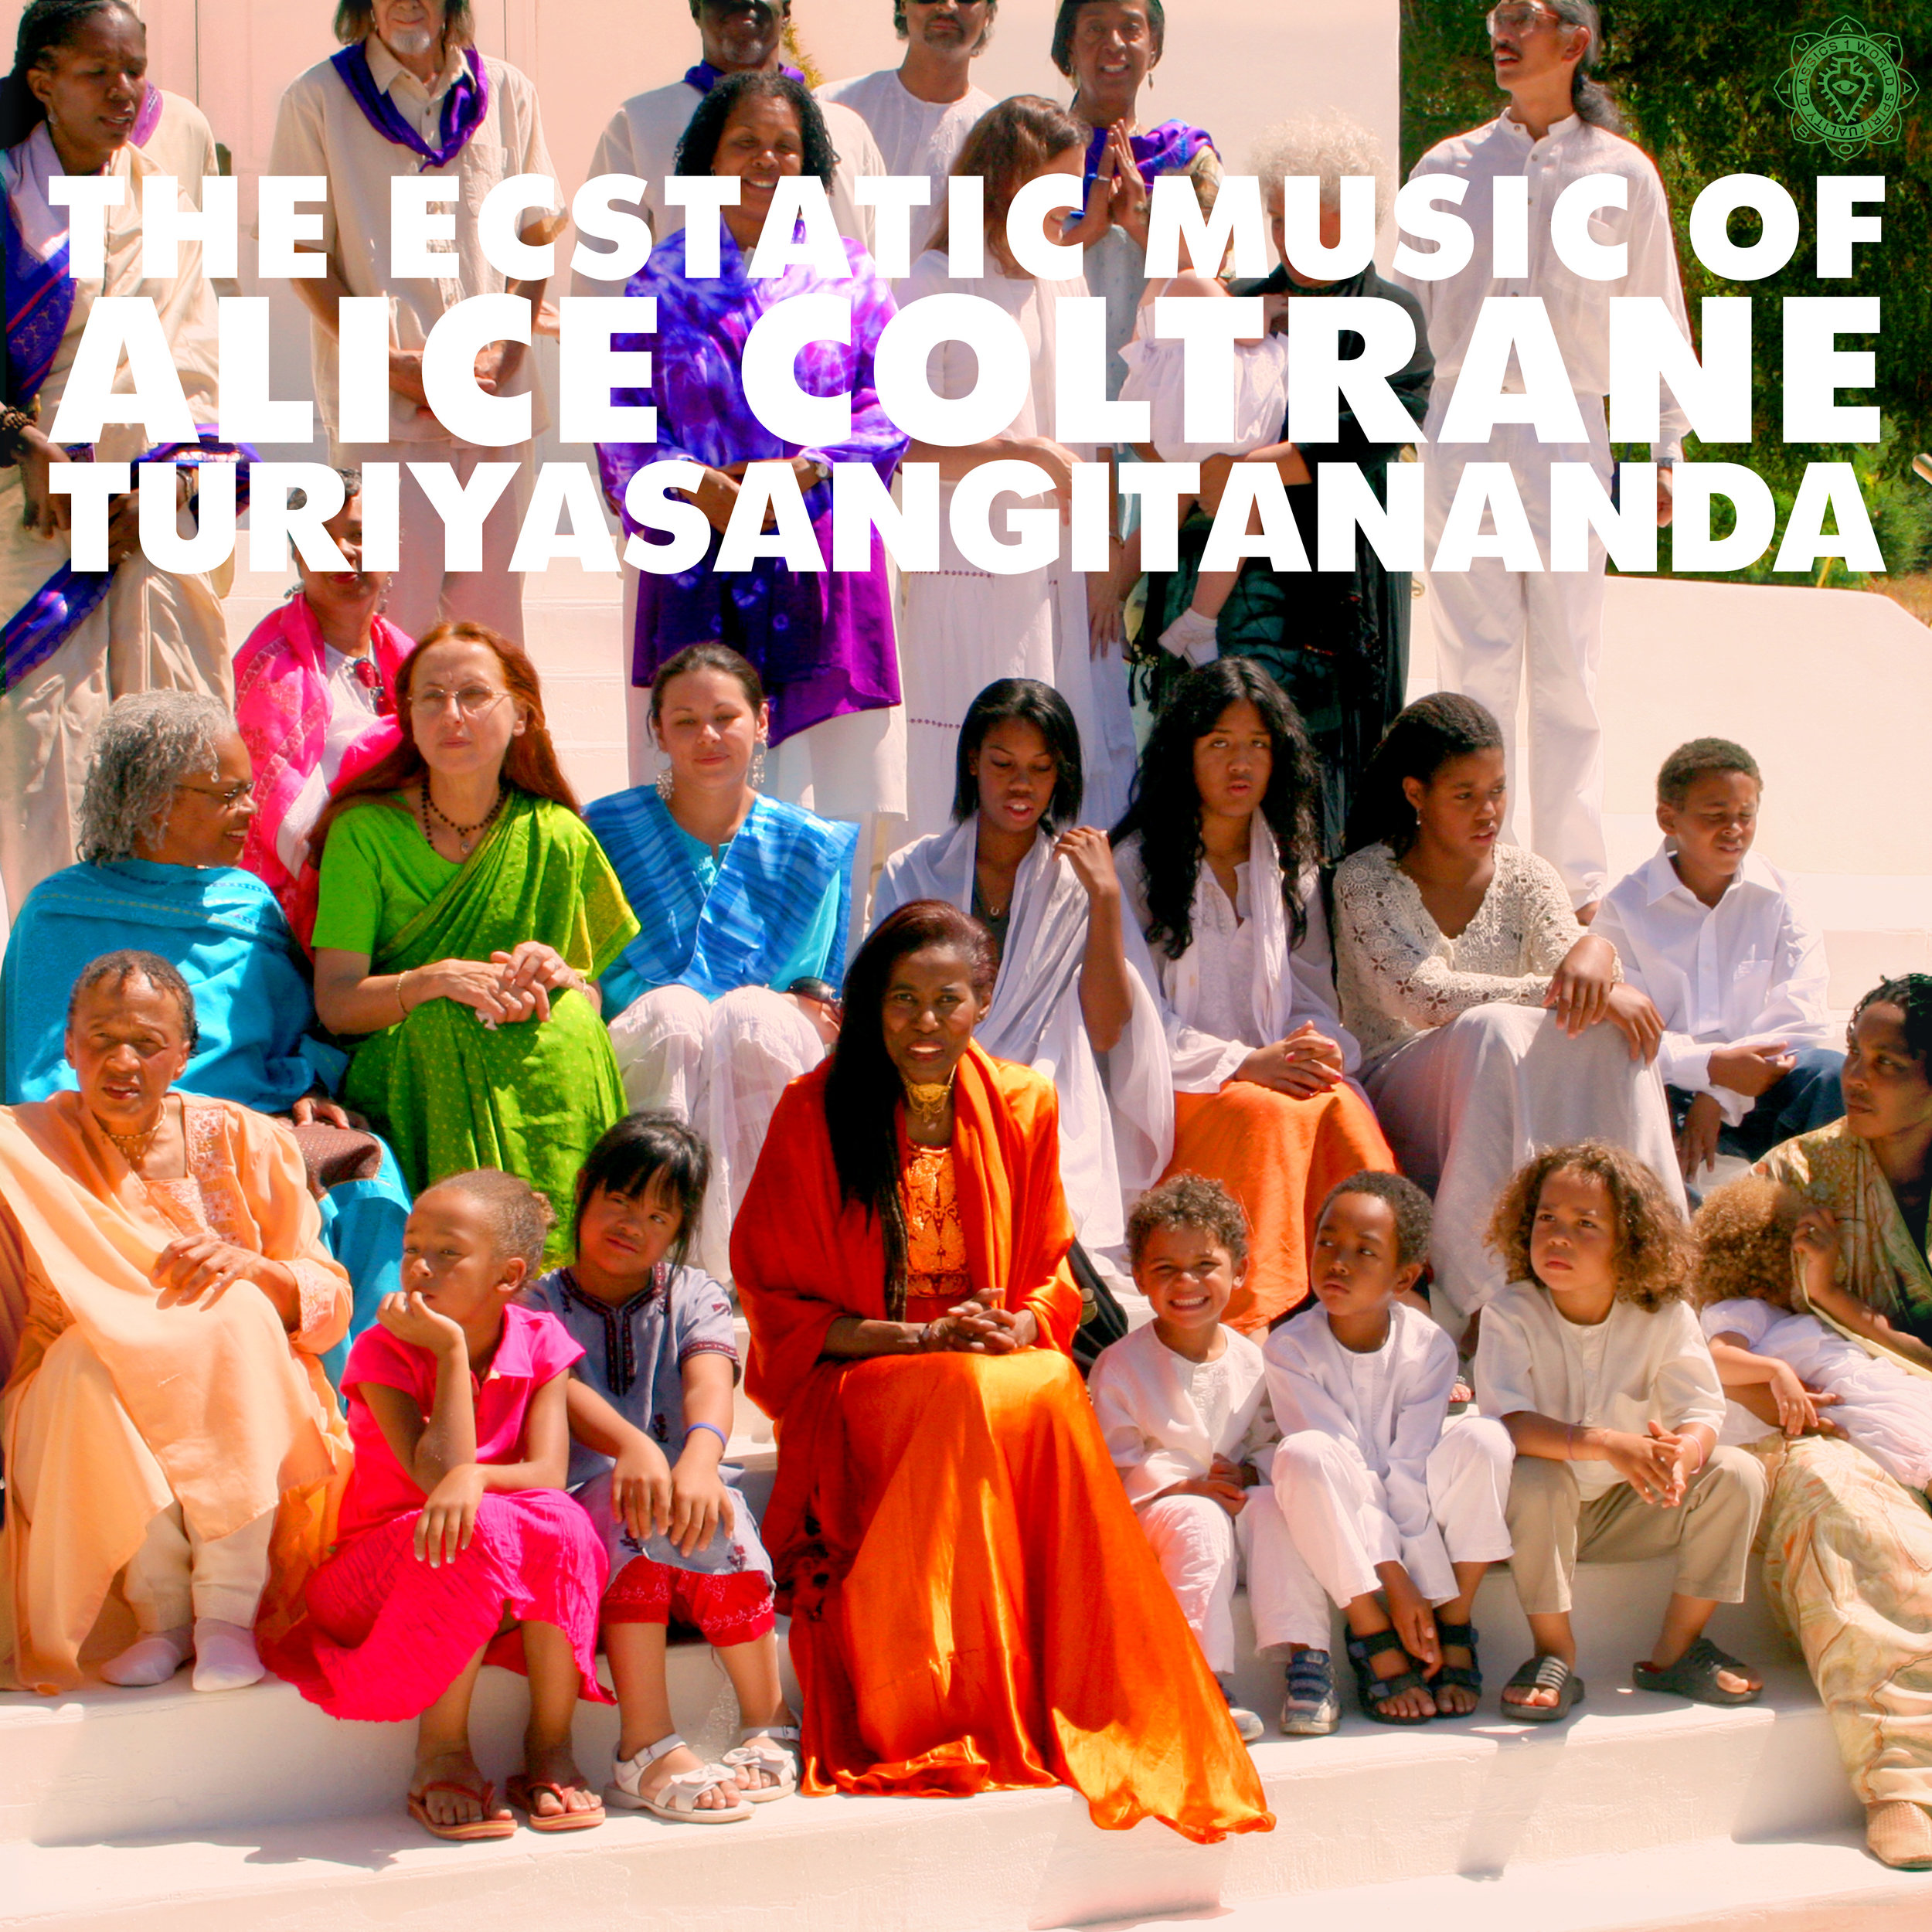 <i>World Spirituality Classics 1: The Ecstatic Music of Alice Coltrane Turiyasangitananda</i> – 2017